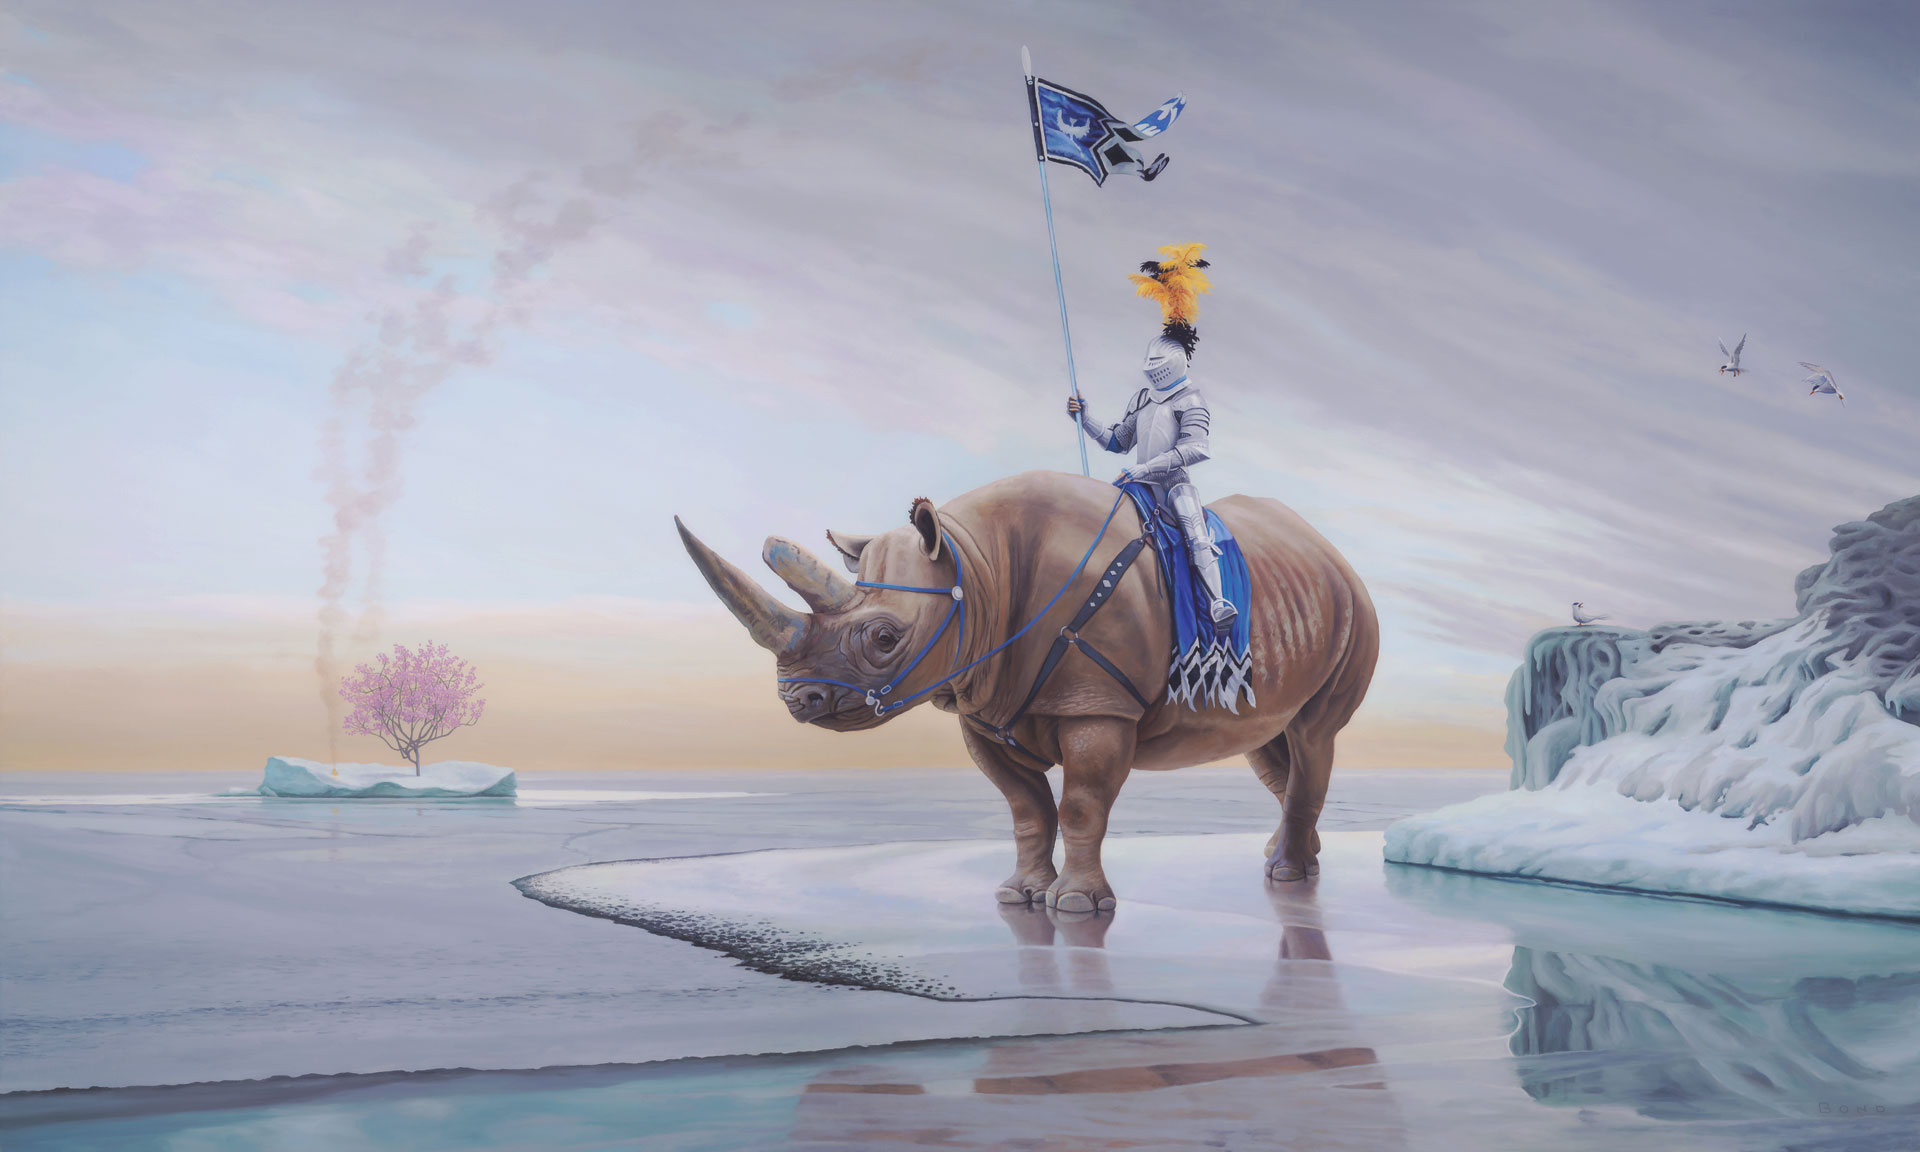 Harbingers of a Vanishing World, painting of a knight on a rhino in the arctic, art with rhinoceros, art with ice flow and ocean, painting of man riding horse, art with iceberg, portrait of  knight in armor on an ice sheet with sky and clouds, art with conquering knight, painting meaning about patriarchy and matriarchy, art with signal fire, art with arctic terns, art meaning divine feminine and balance, Art about extinction and protecting the environment, painting about global warming, art conveying patriarchal society, painting with idealism, soulful uplifting inspirational art, soul stirring illusion art, romantic art,  surrealism, surreal art, dreamlike imagery, fanciful art, fantasy art, dreamscape visual, metaphysical art, spiritual painting, metaphysical painting, spiritual art, whimsical art, whimsy art, dream art, fantastic realism art, magic realism oil painting by Paul Bond